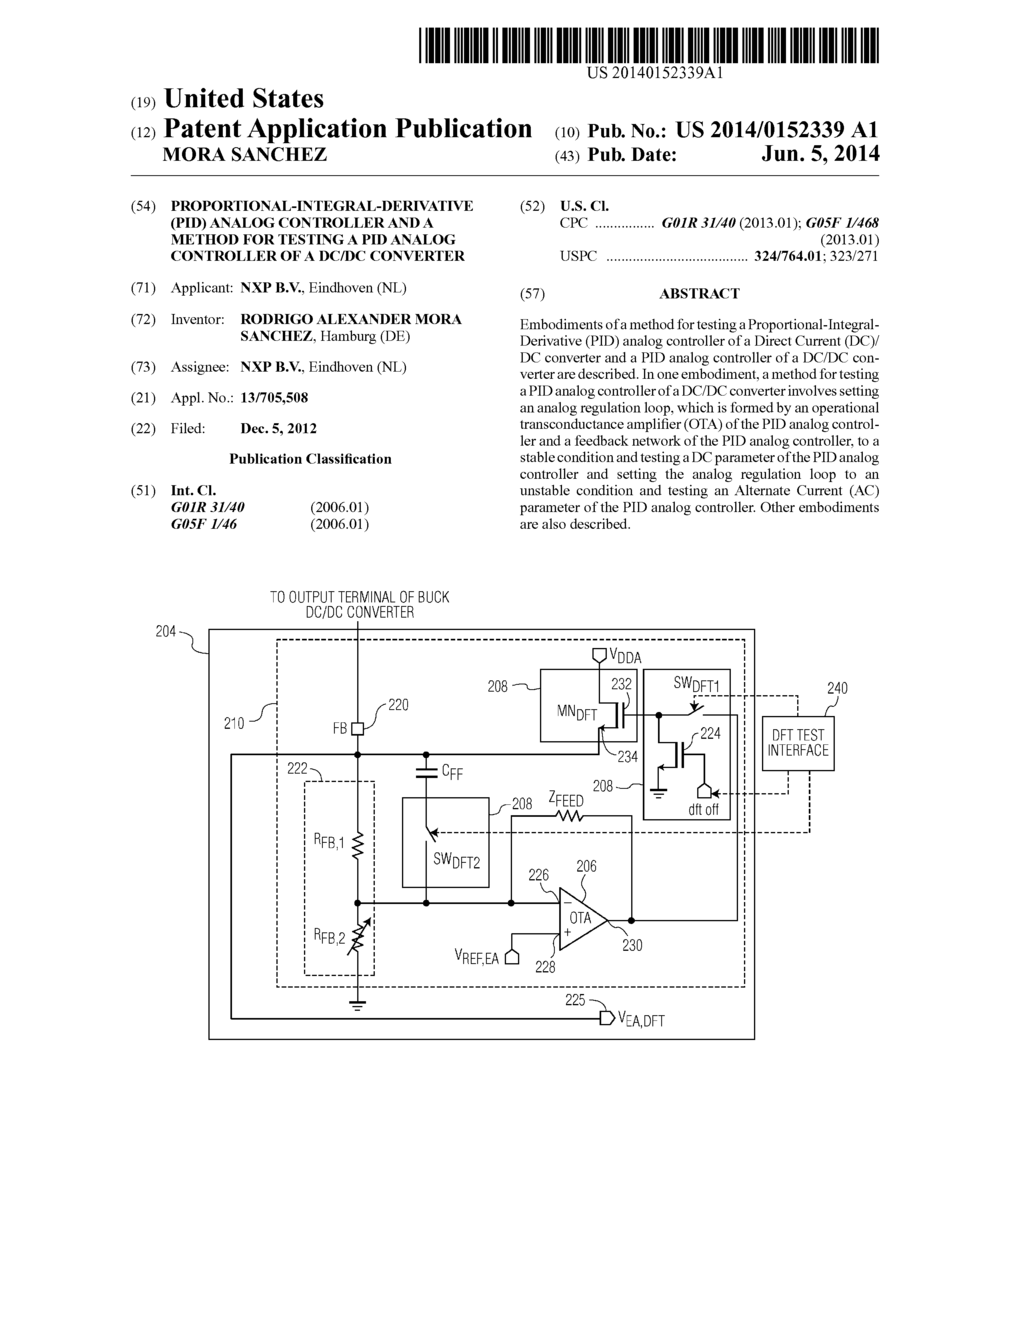 hight resolution of proportional integral derivative pid analog controller and a method for testing a pid analog controller of a dc dc converter diagram schematic